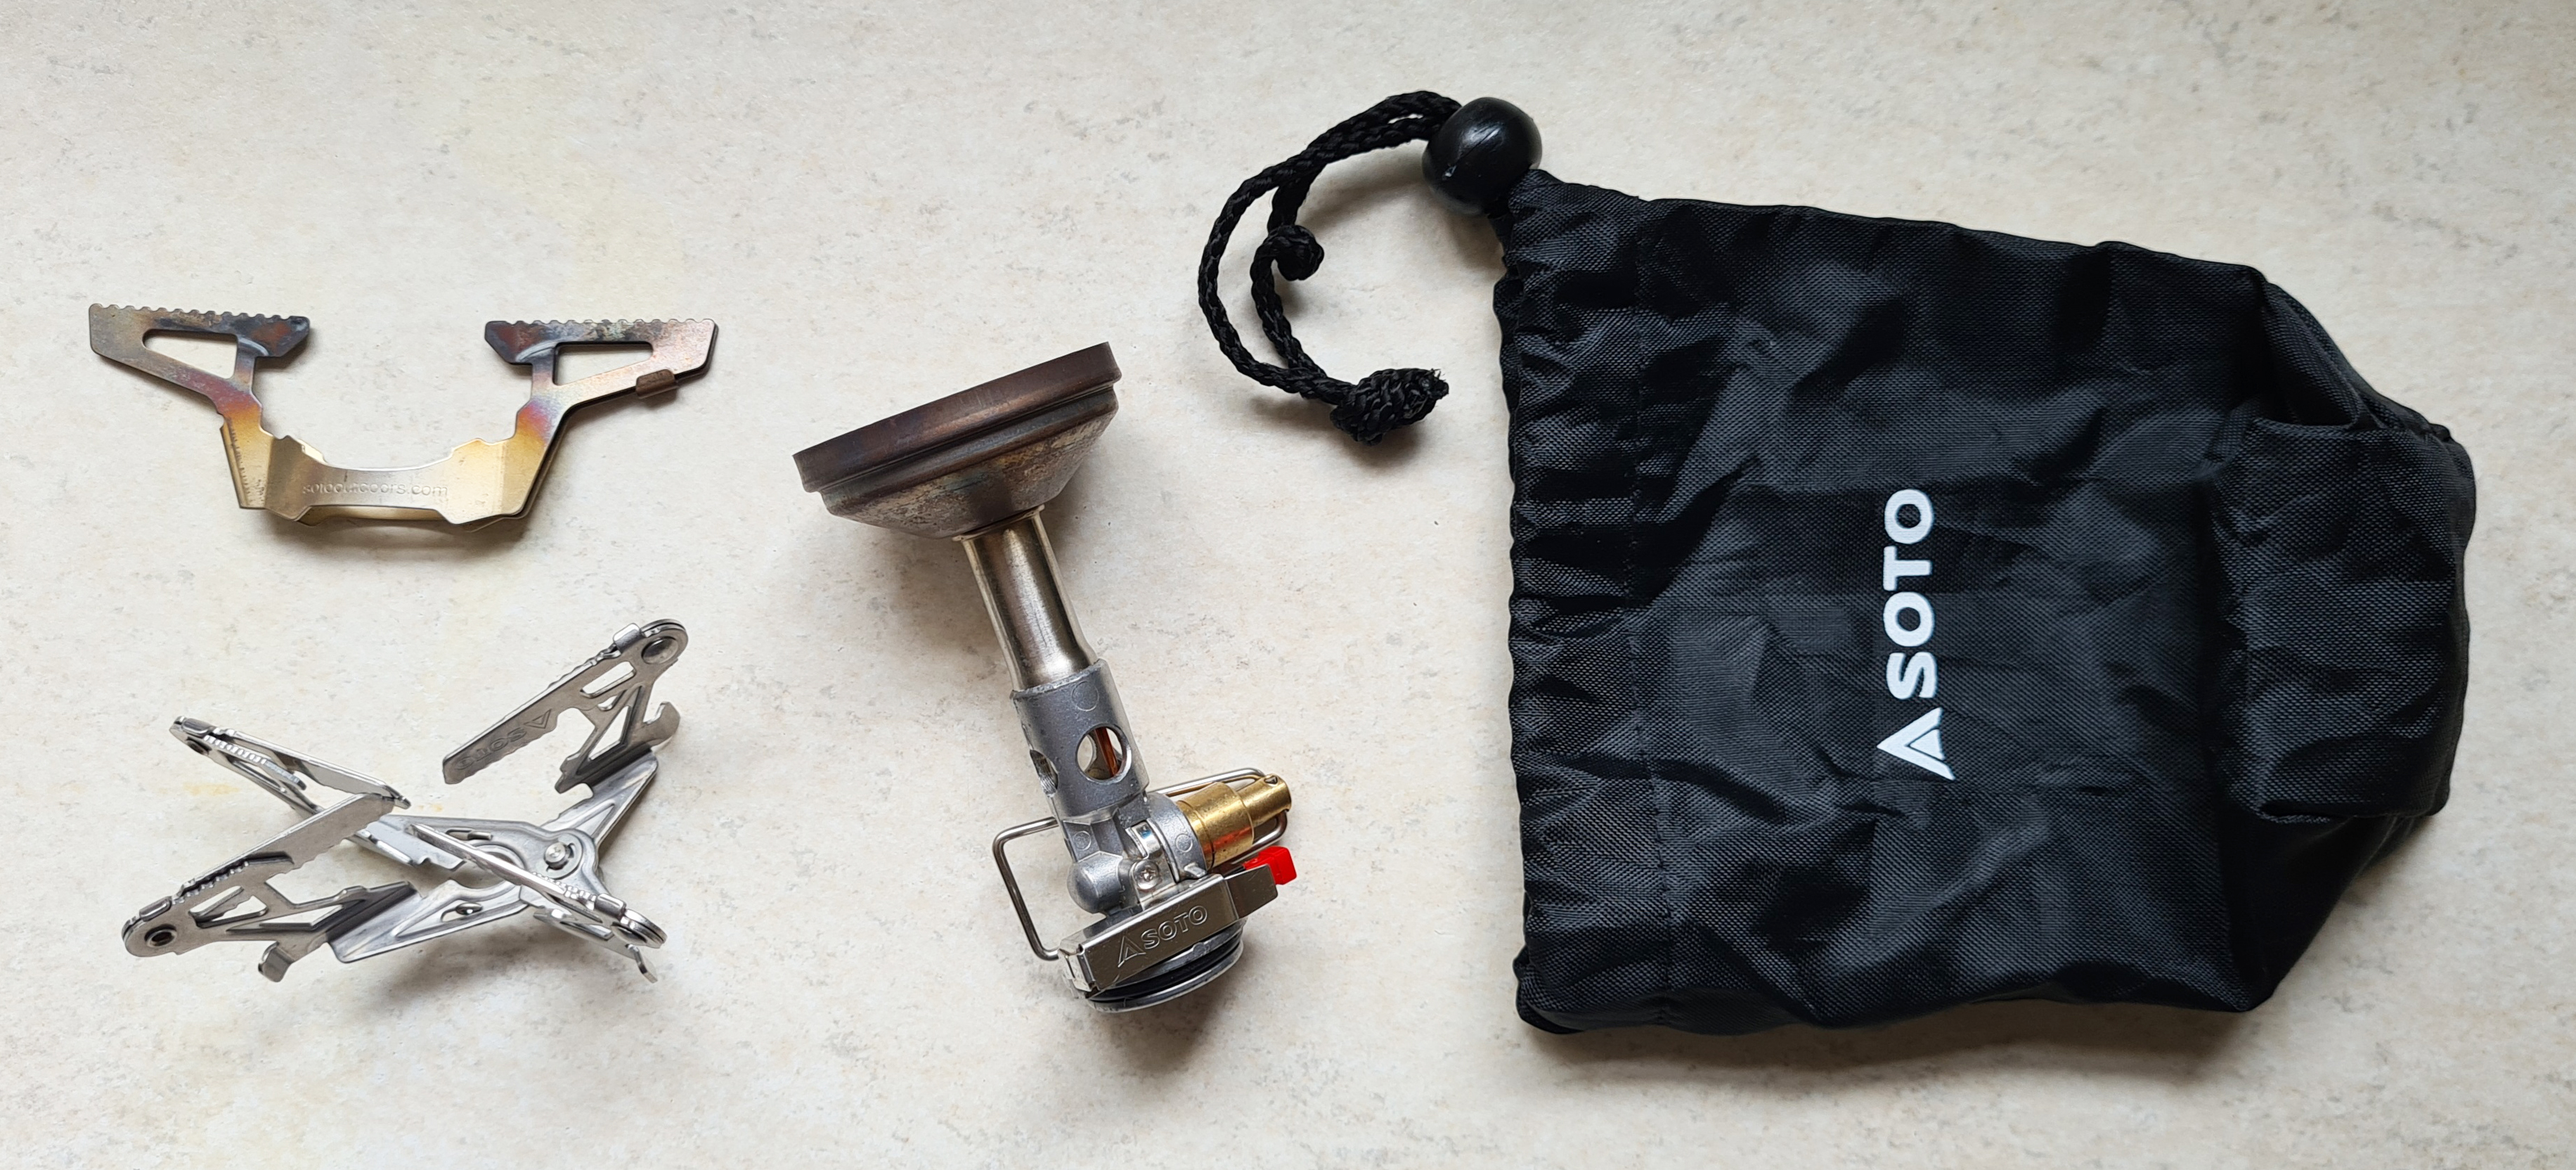 When purchased, the Soto Windmaster comes with a small and tough drawcord baggie and the 4Flex pot support. The TriFlex three-arm support (top left) is an optional extra